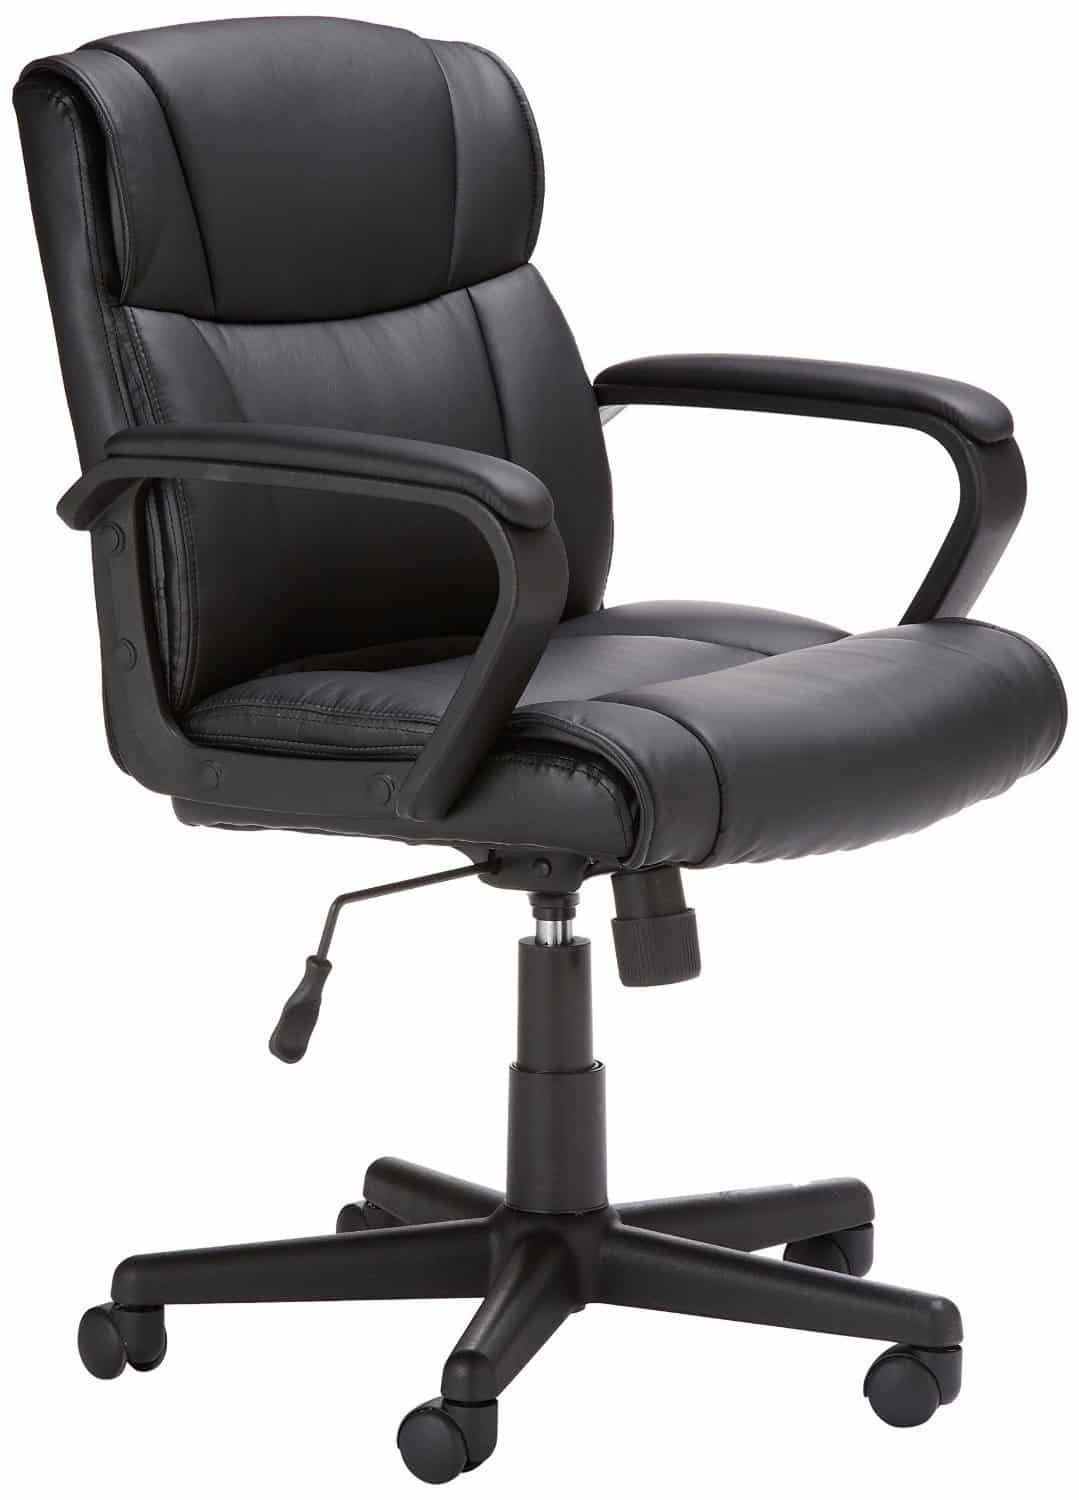 Top 10 Most Comfortable Office Chairs In 2020 Best Office Chair Black Office Chair Best Ergonomic Office Chair